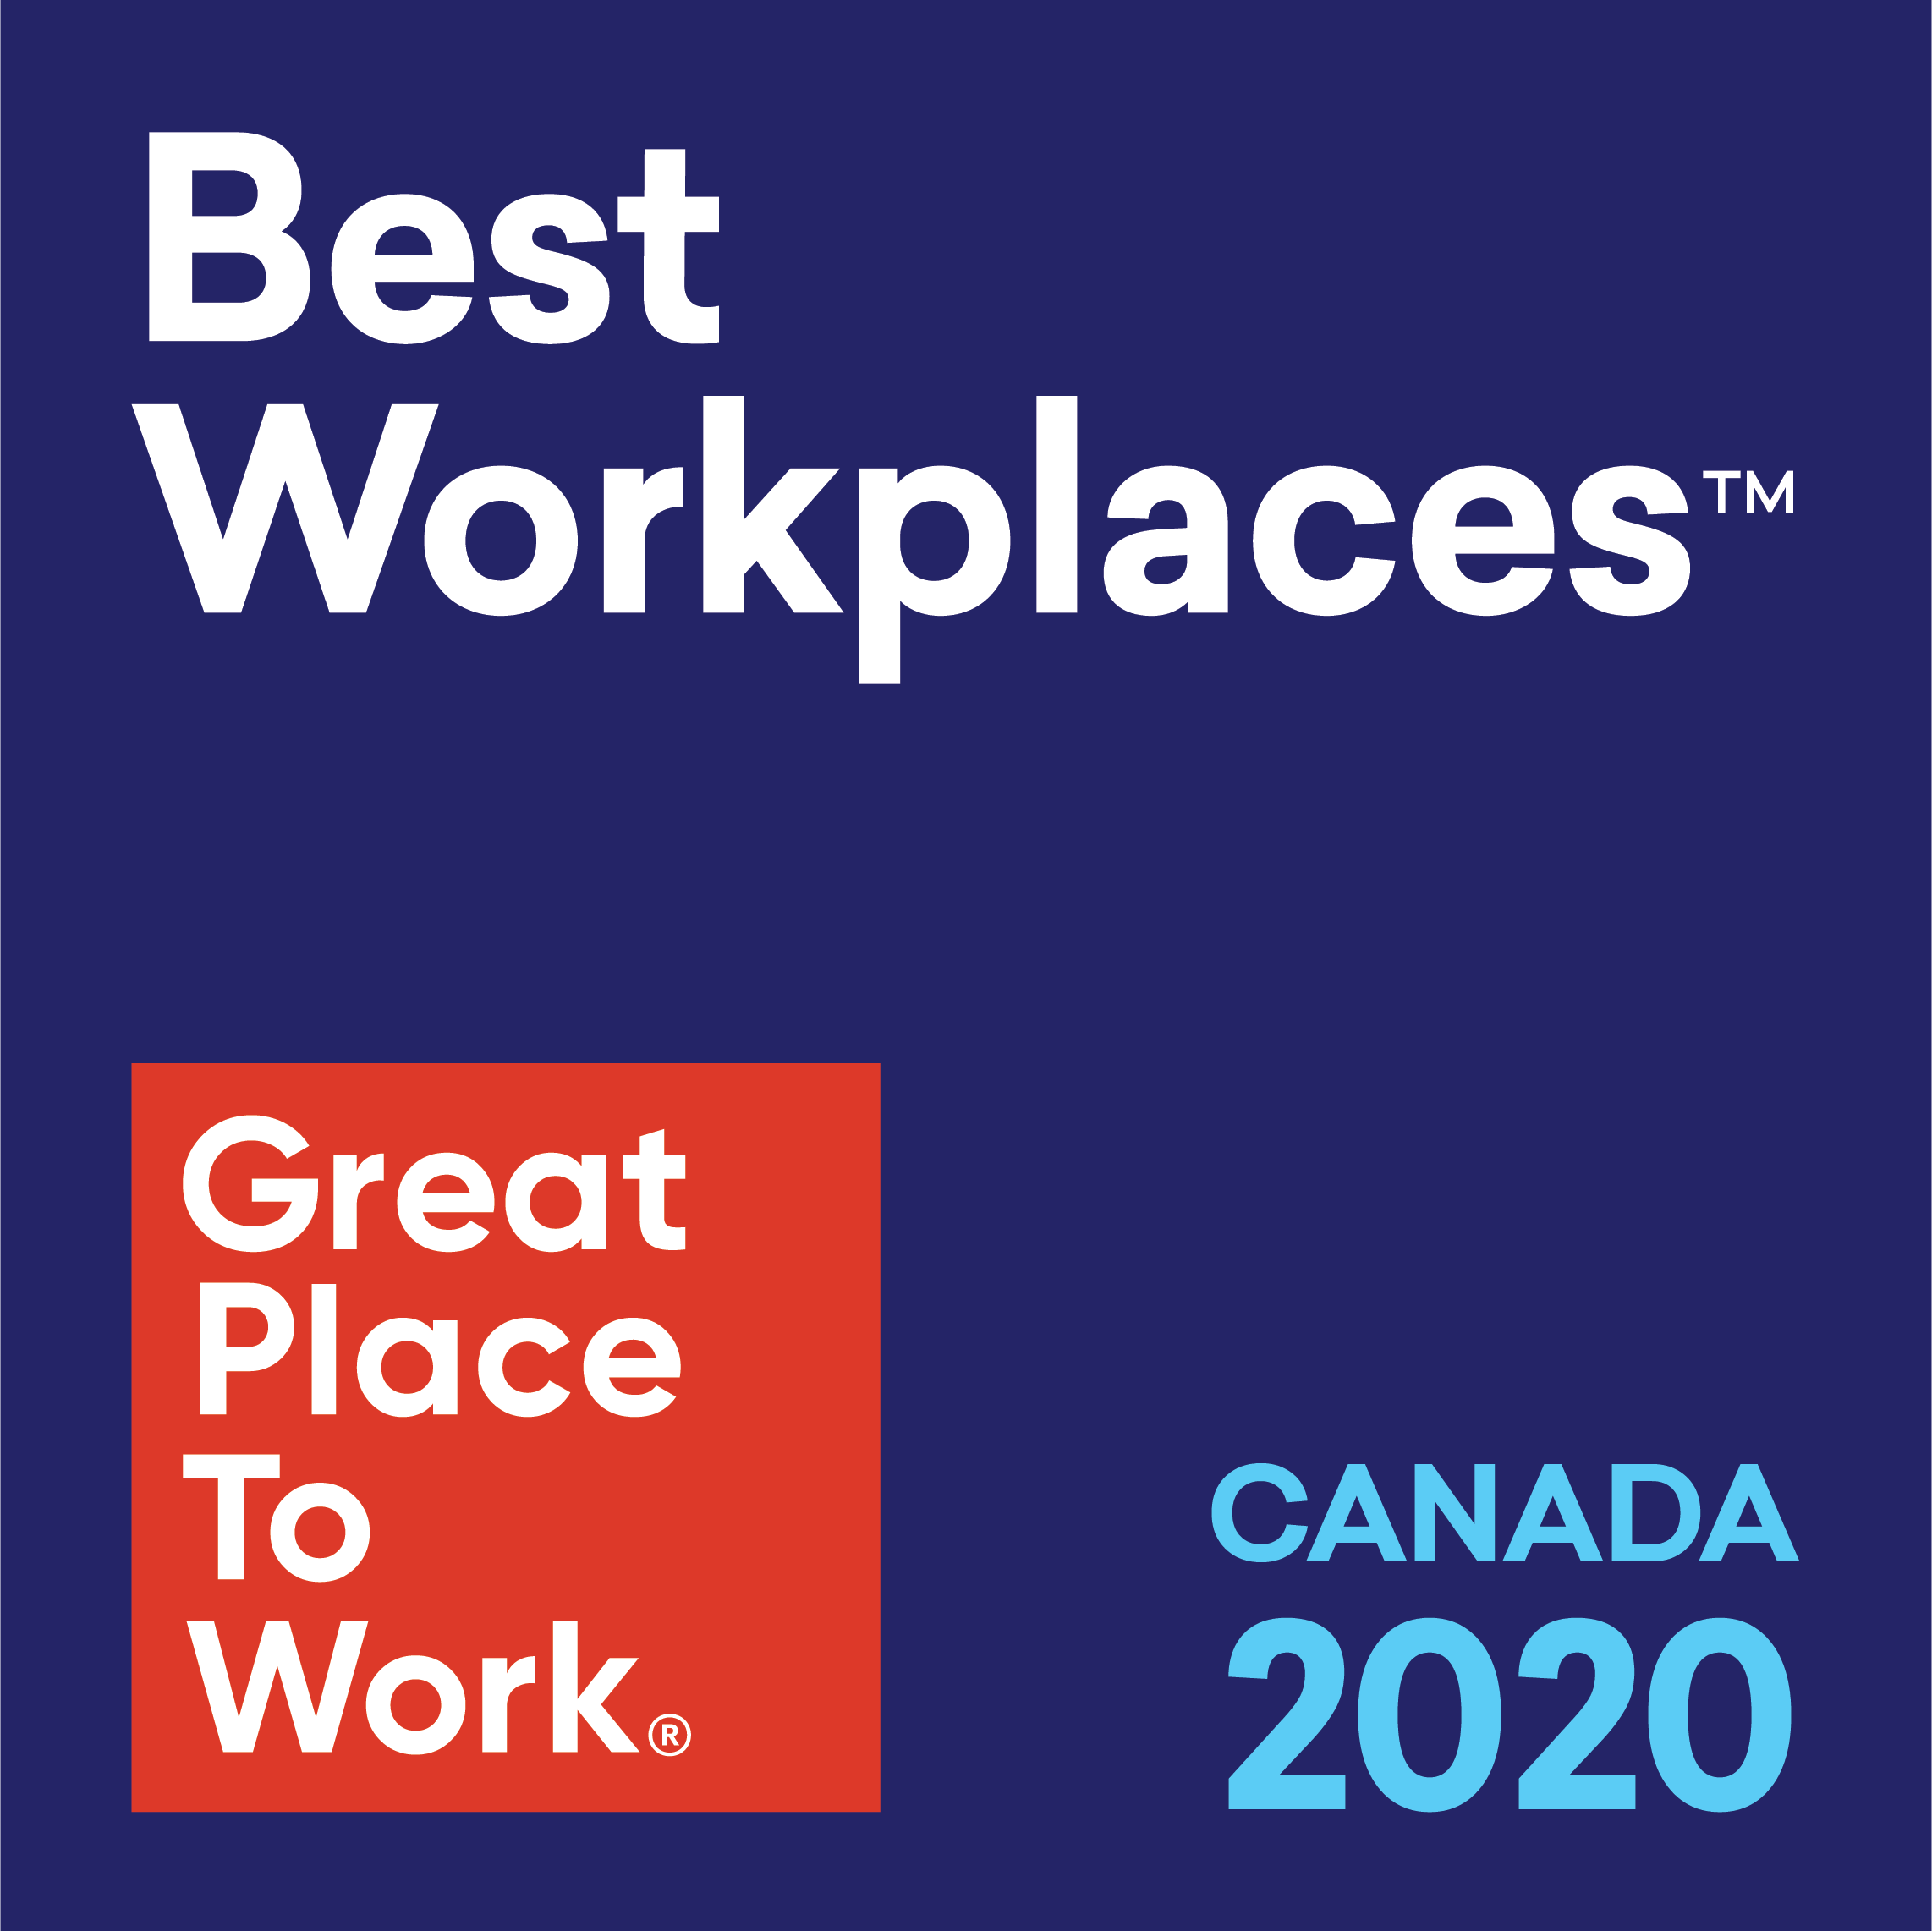 Ryan Named One of the Best Workplaces in Canada for Eighth Consecutive Year